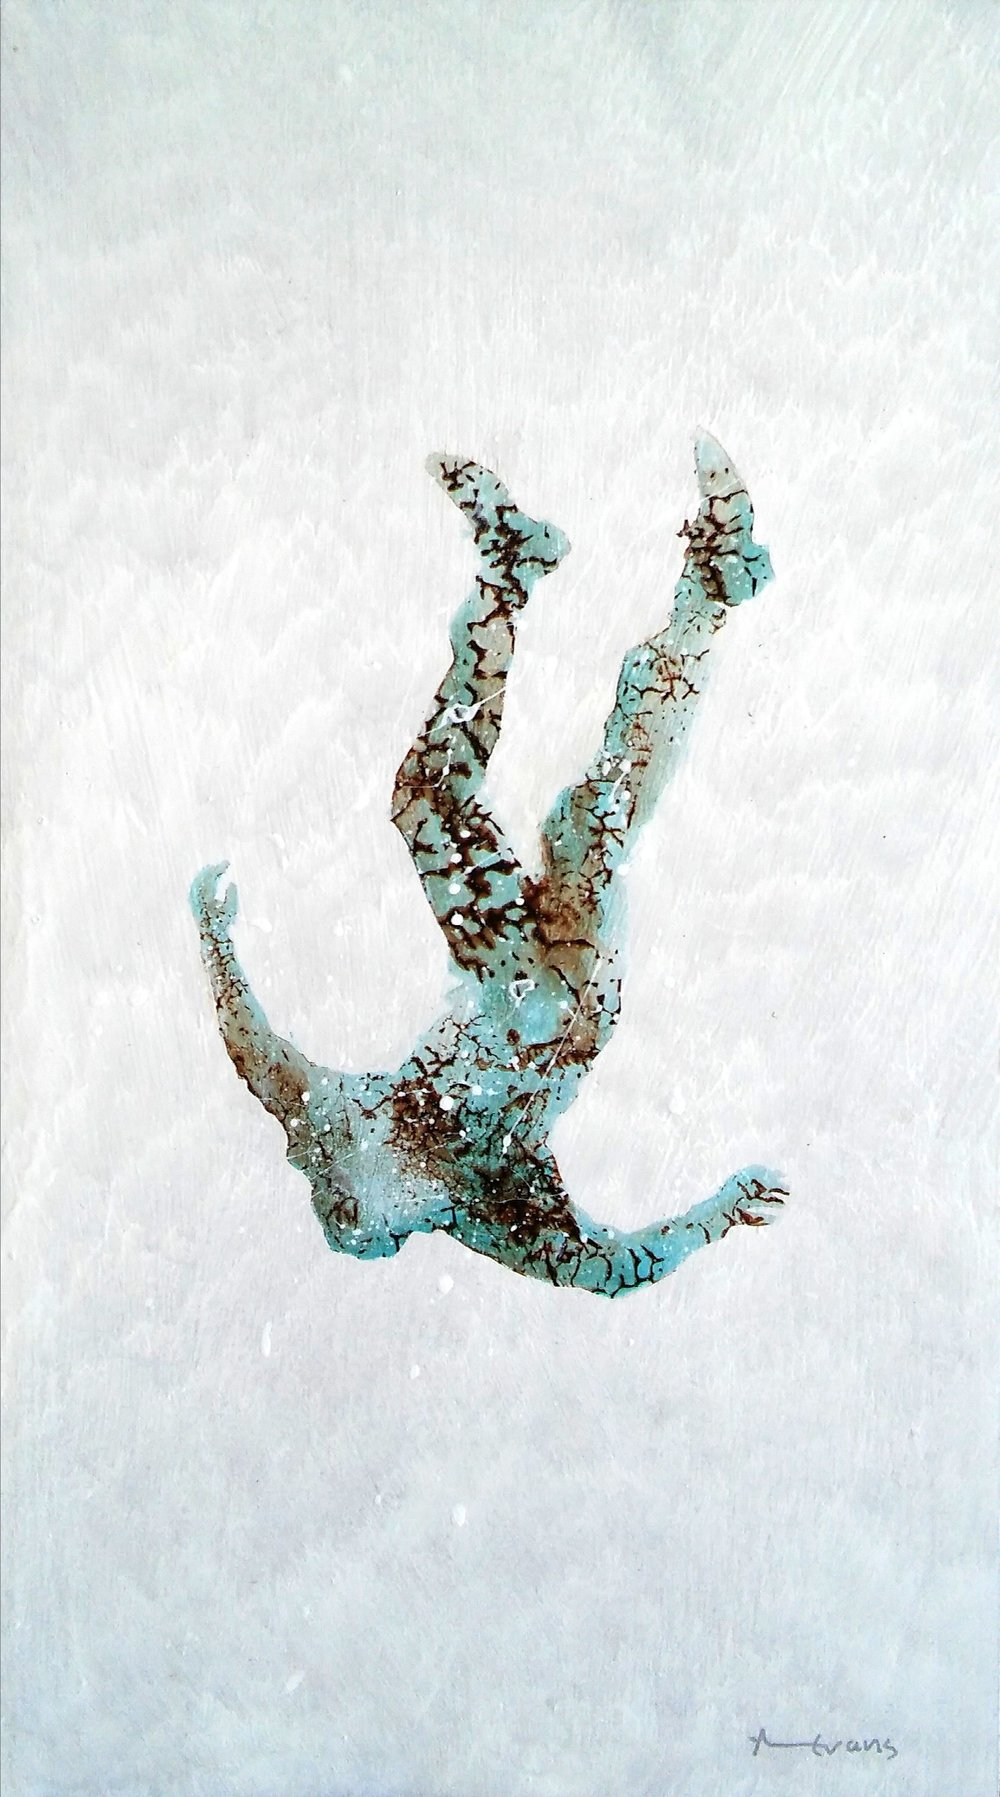 Freefall   1-3         Anthony Evans   Acrylic on MDF board with resin      400 x 220 mm      R 4 000.00 excl. vat